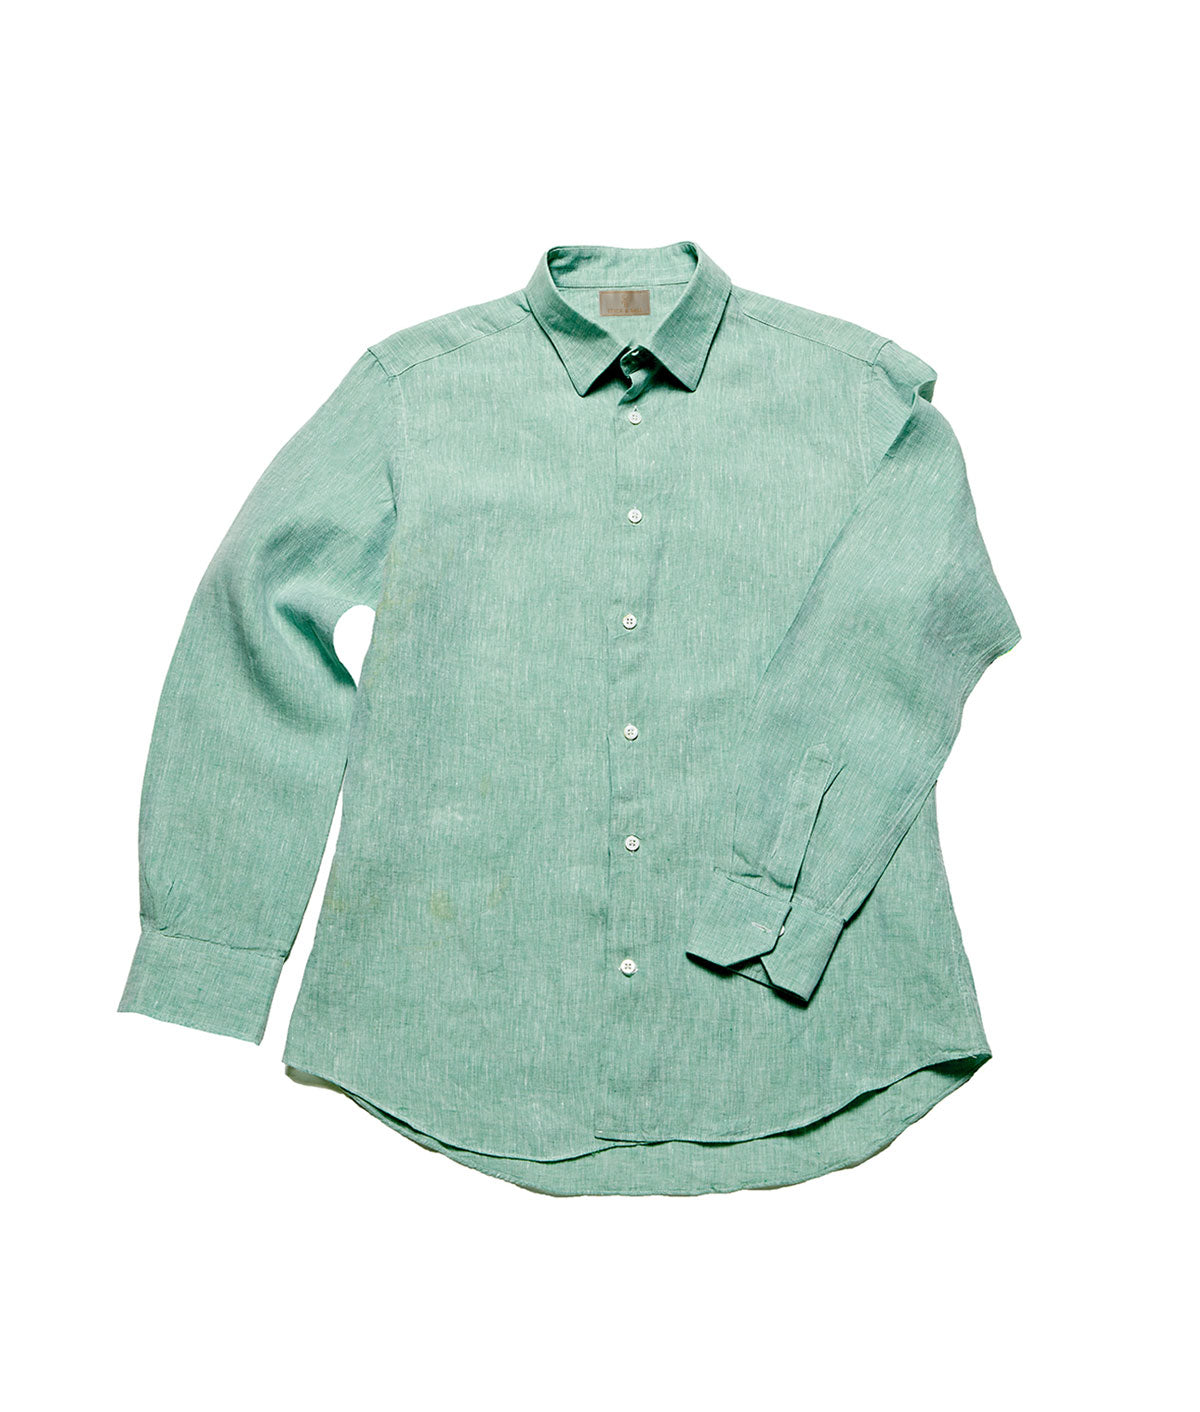 Men's Linen Shirt - Sage Green